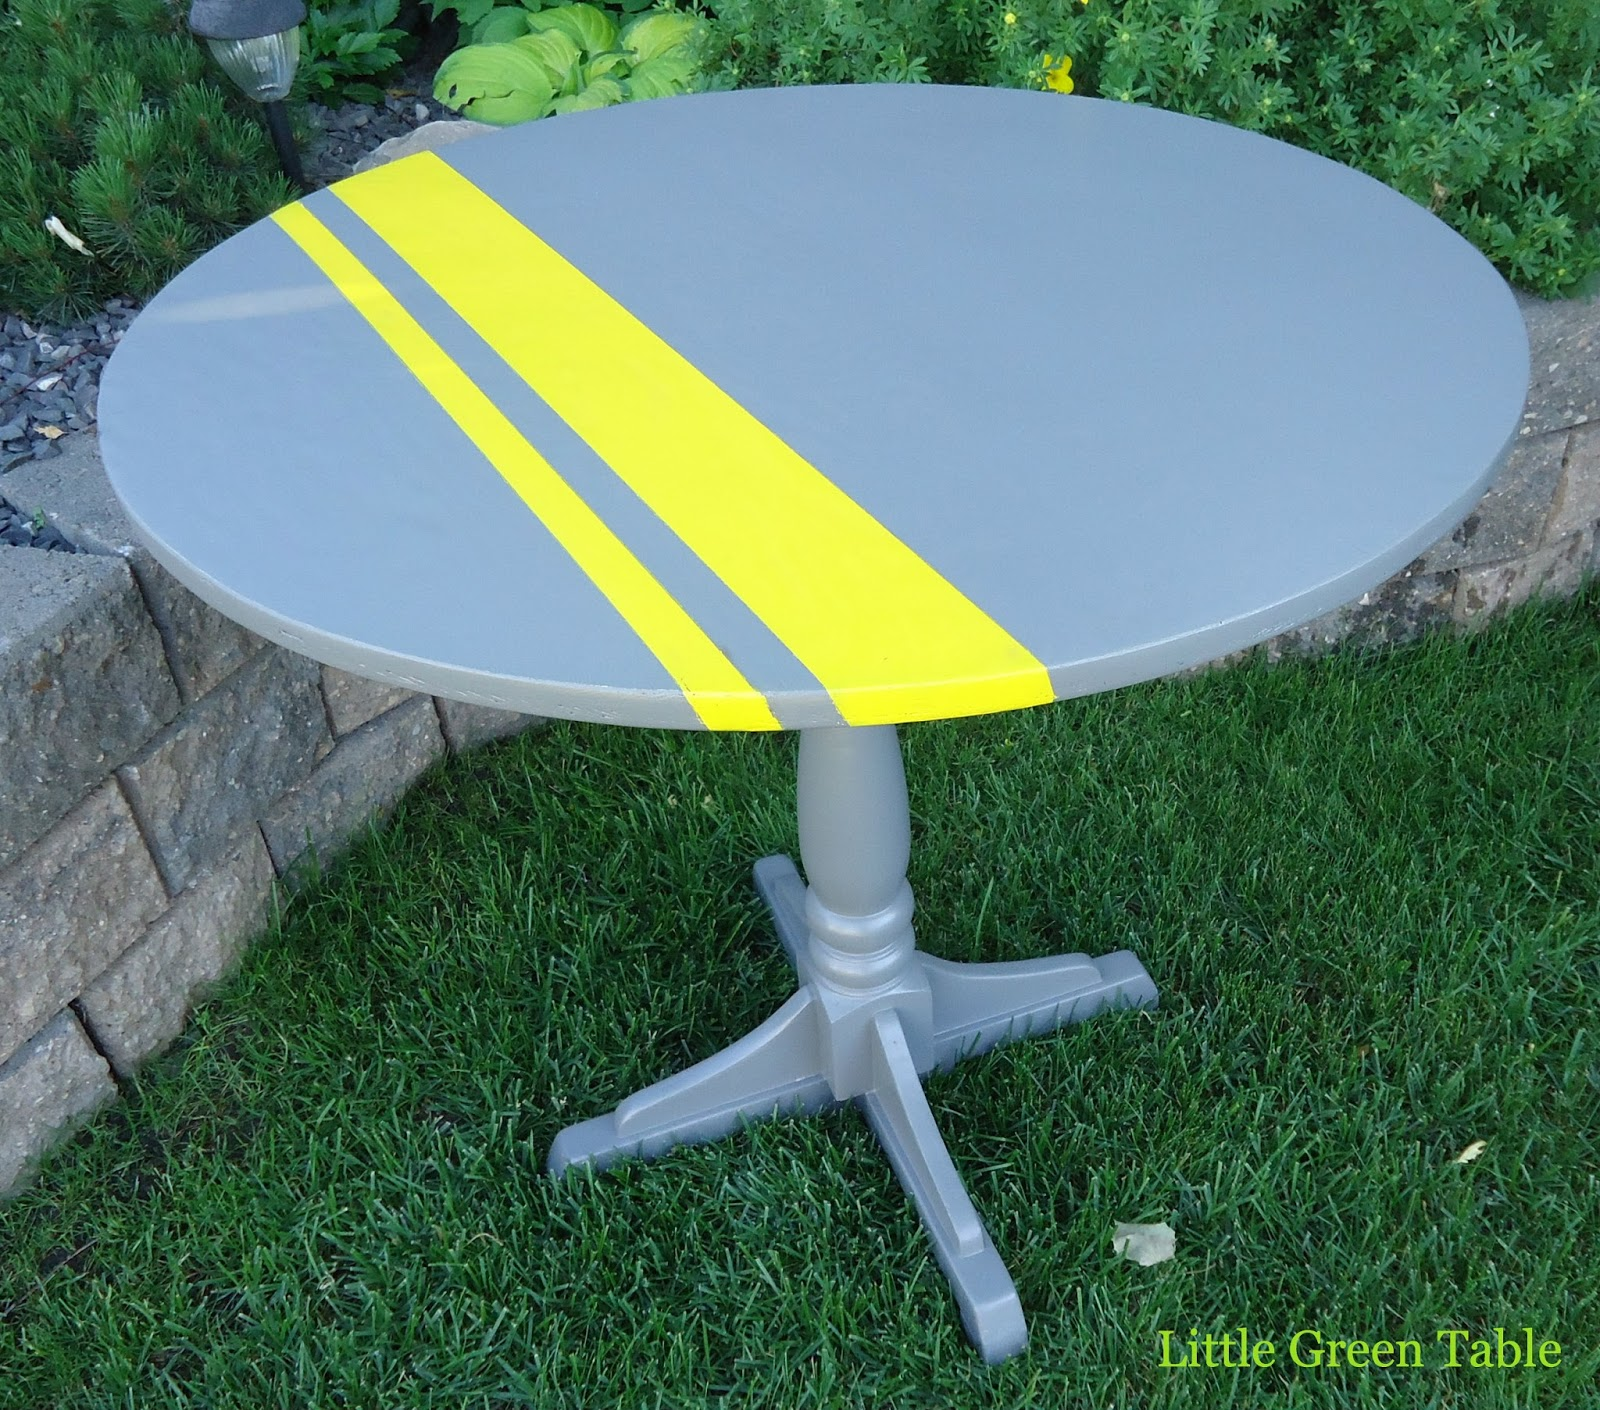 Grey and Yellow Dining Set Little Green Table : Greyyellowdiningset table from littlegreentable.blogspot.com size 1600 x 1410 jpeg 553kB